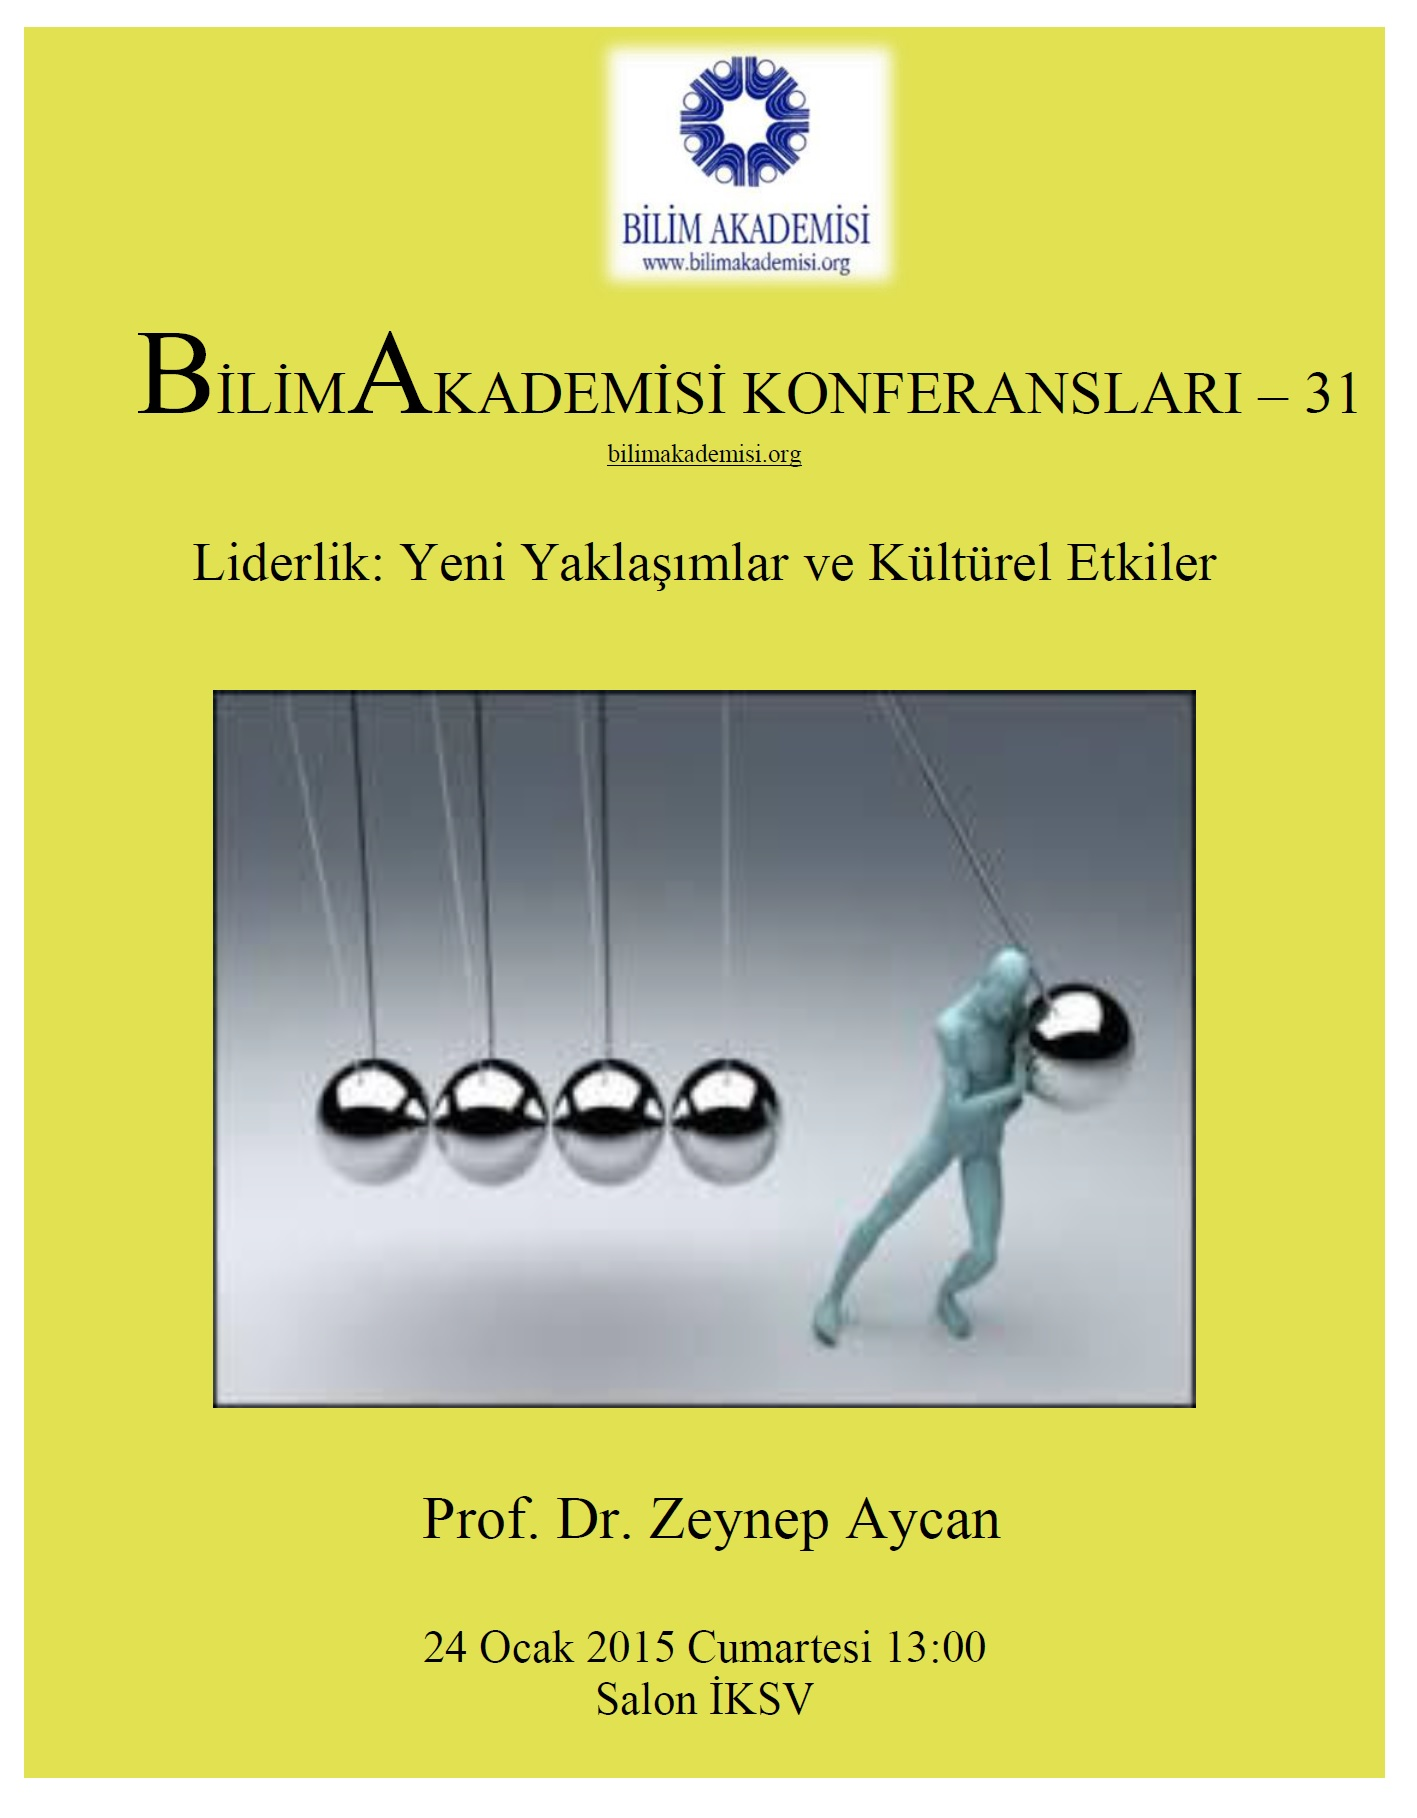 Leadership: New Approaches and Cultural Repercussions – Speaker: Zeynep Aycan